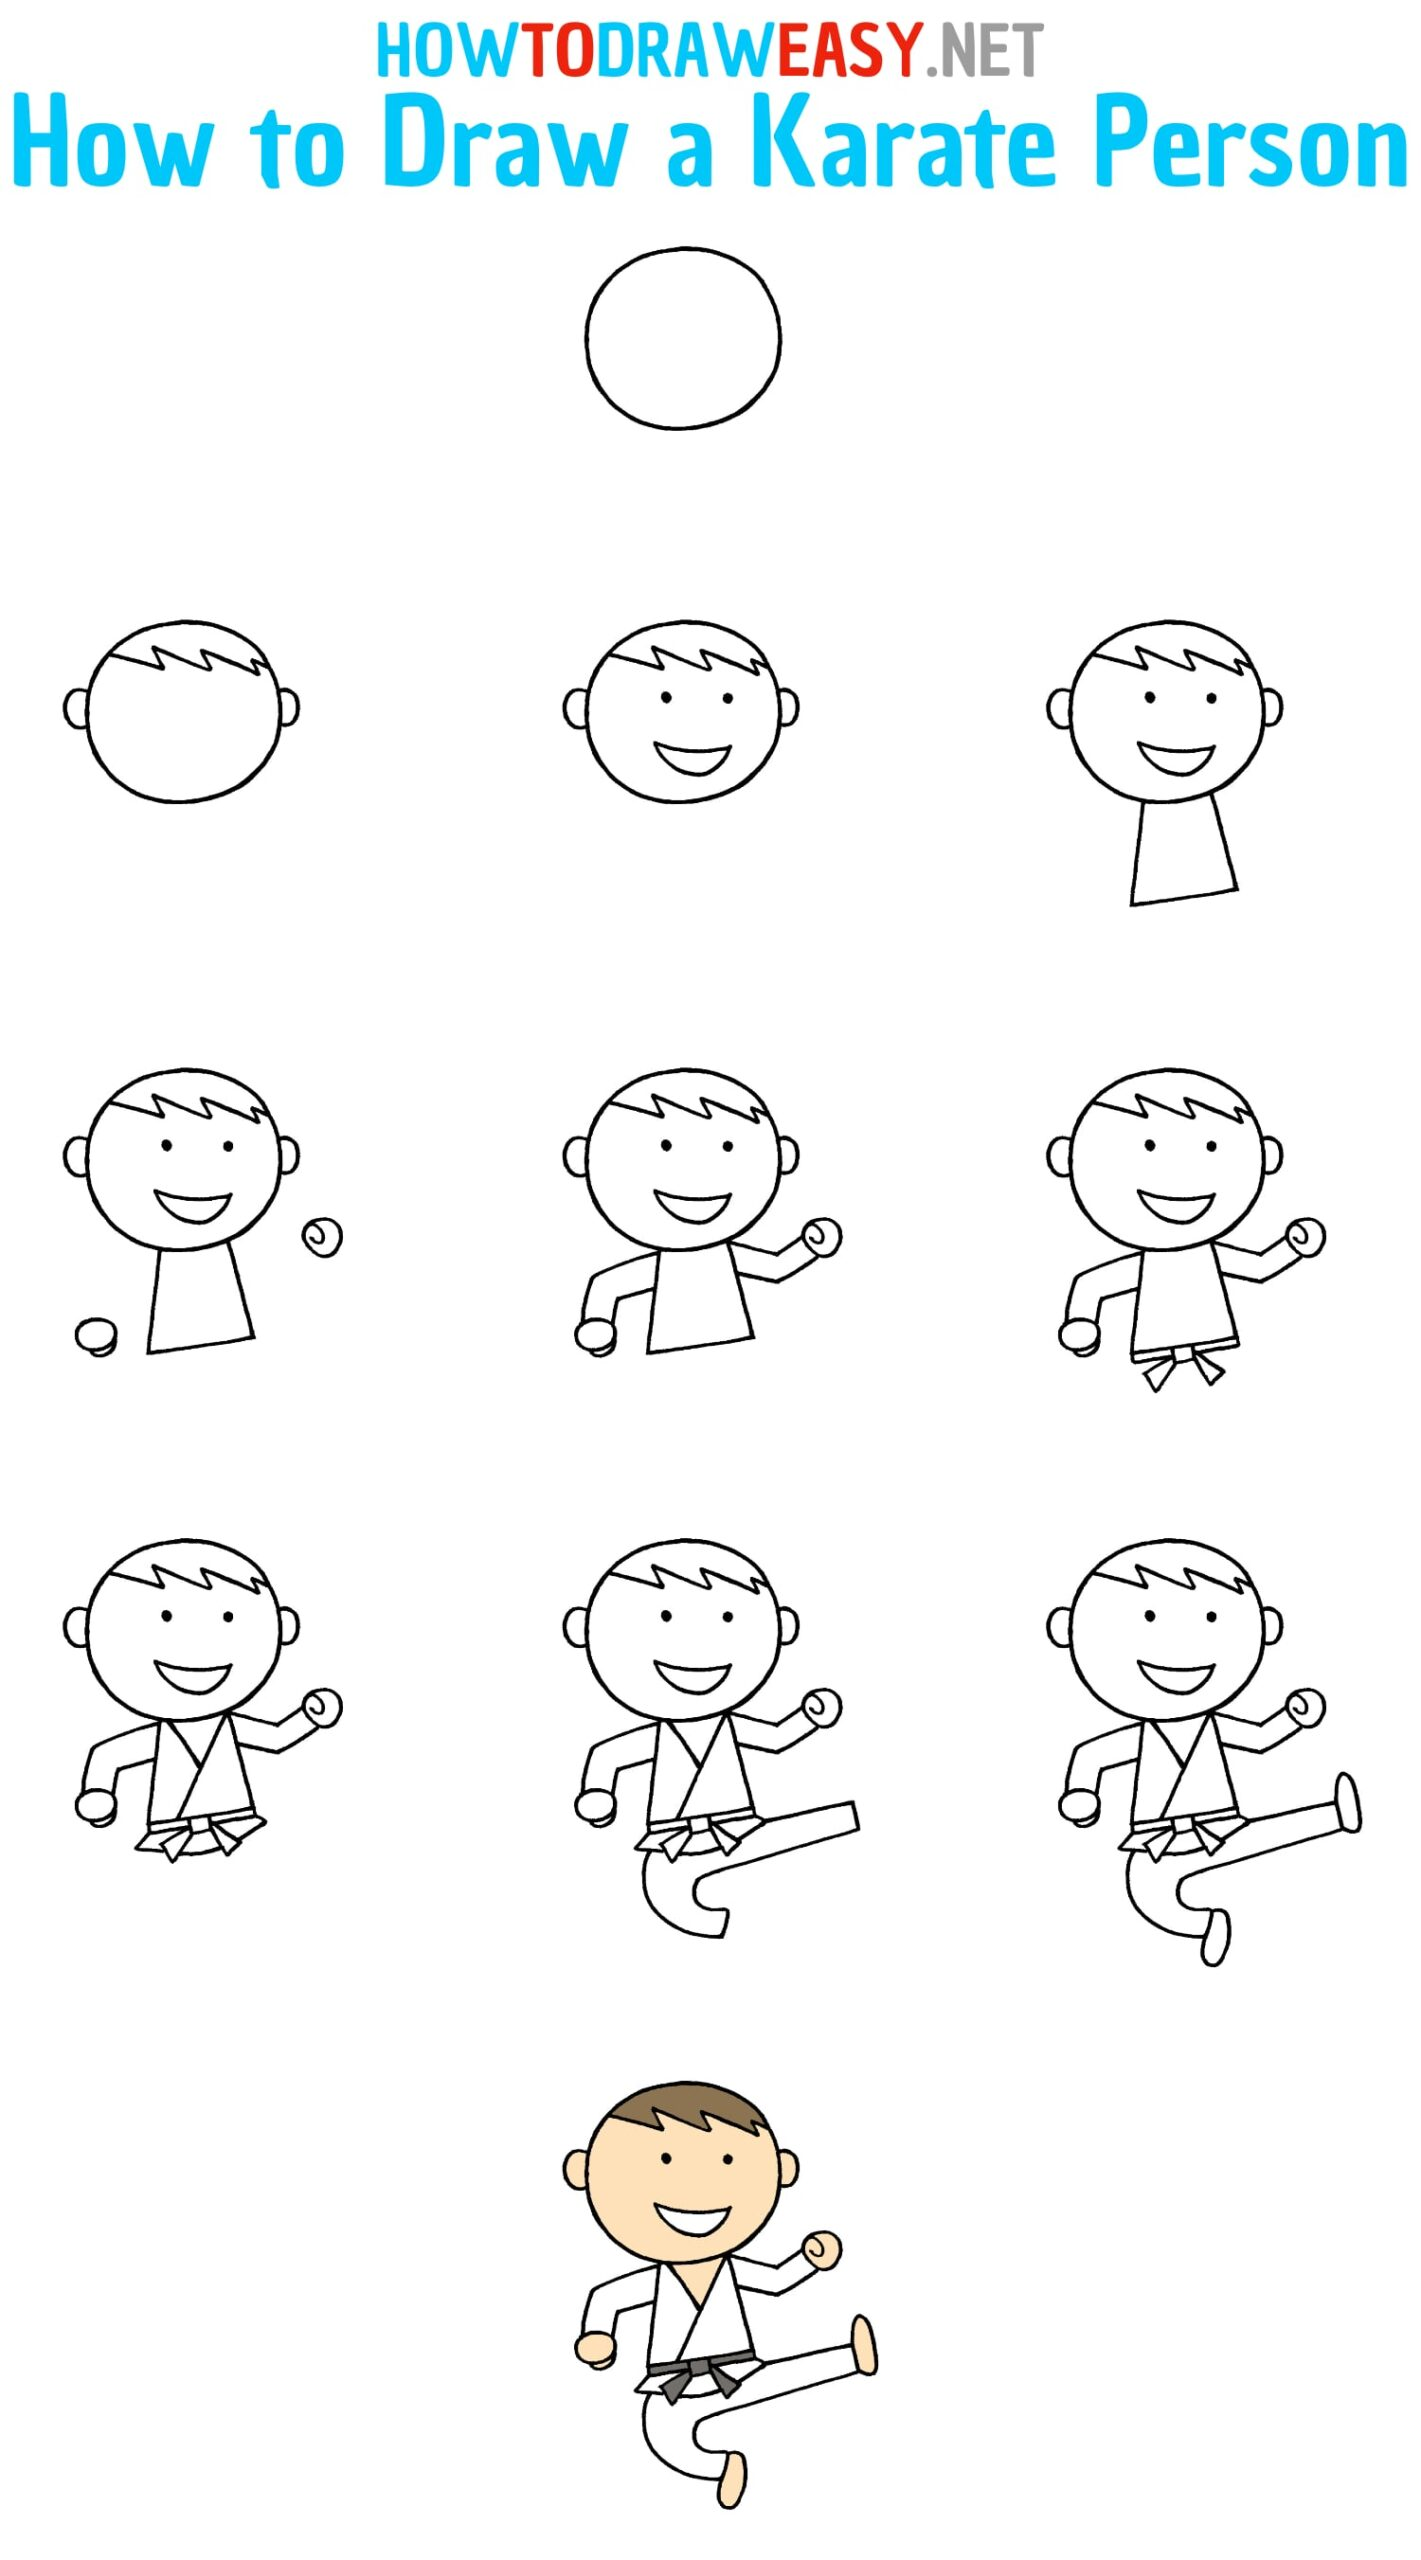 How to Draw a Karate Person Step by Step